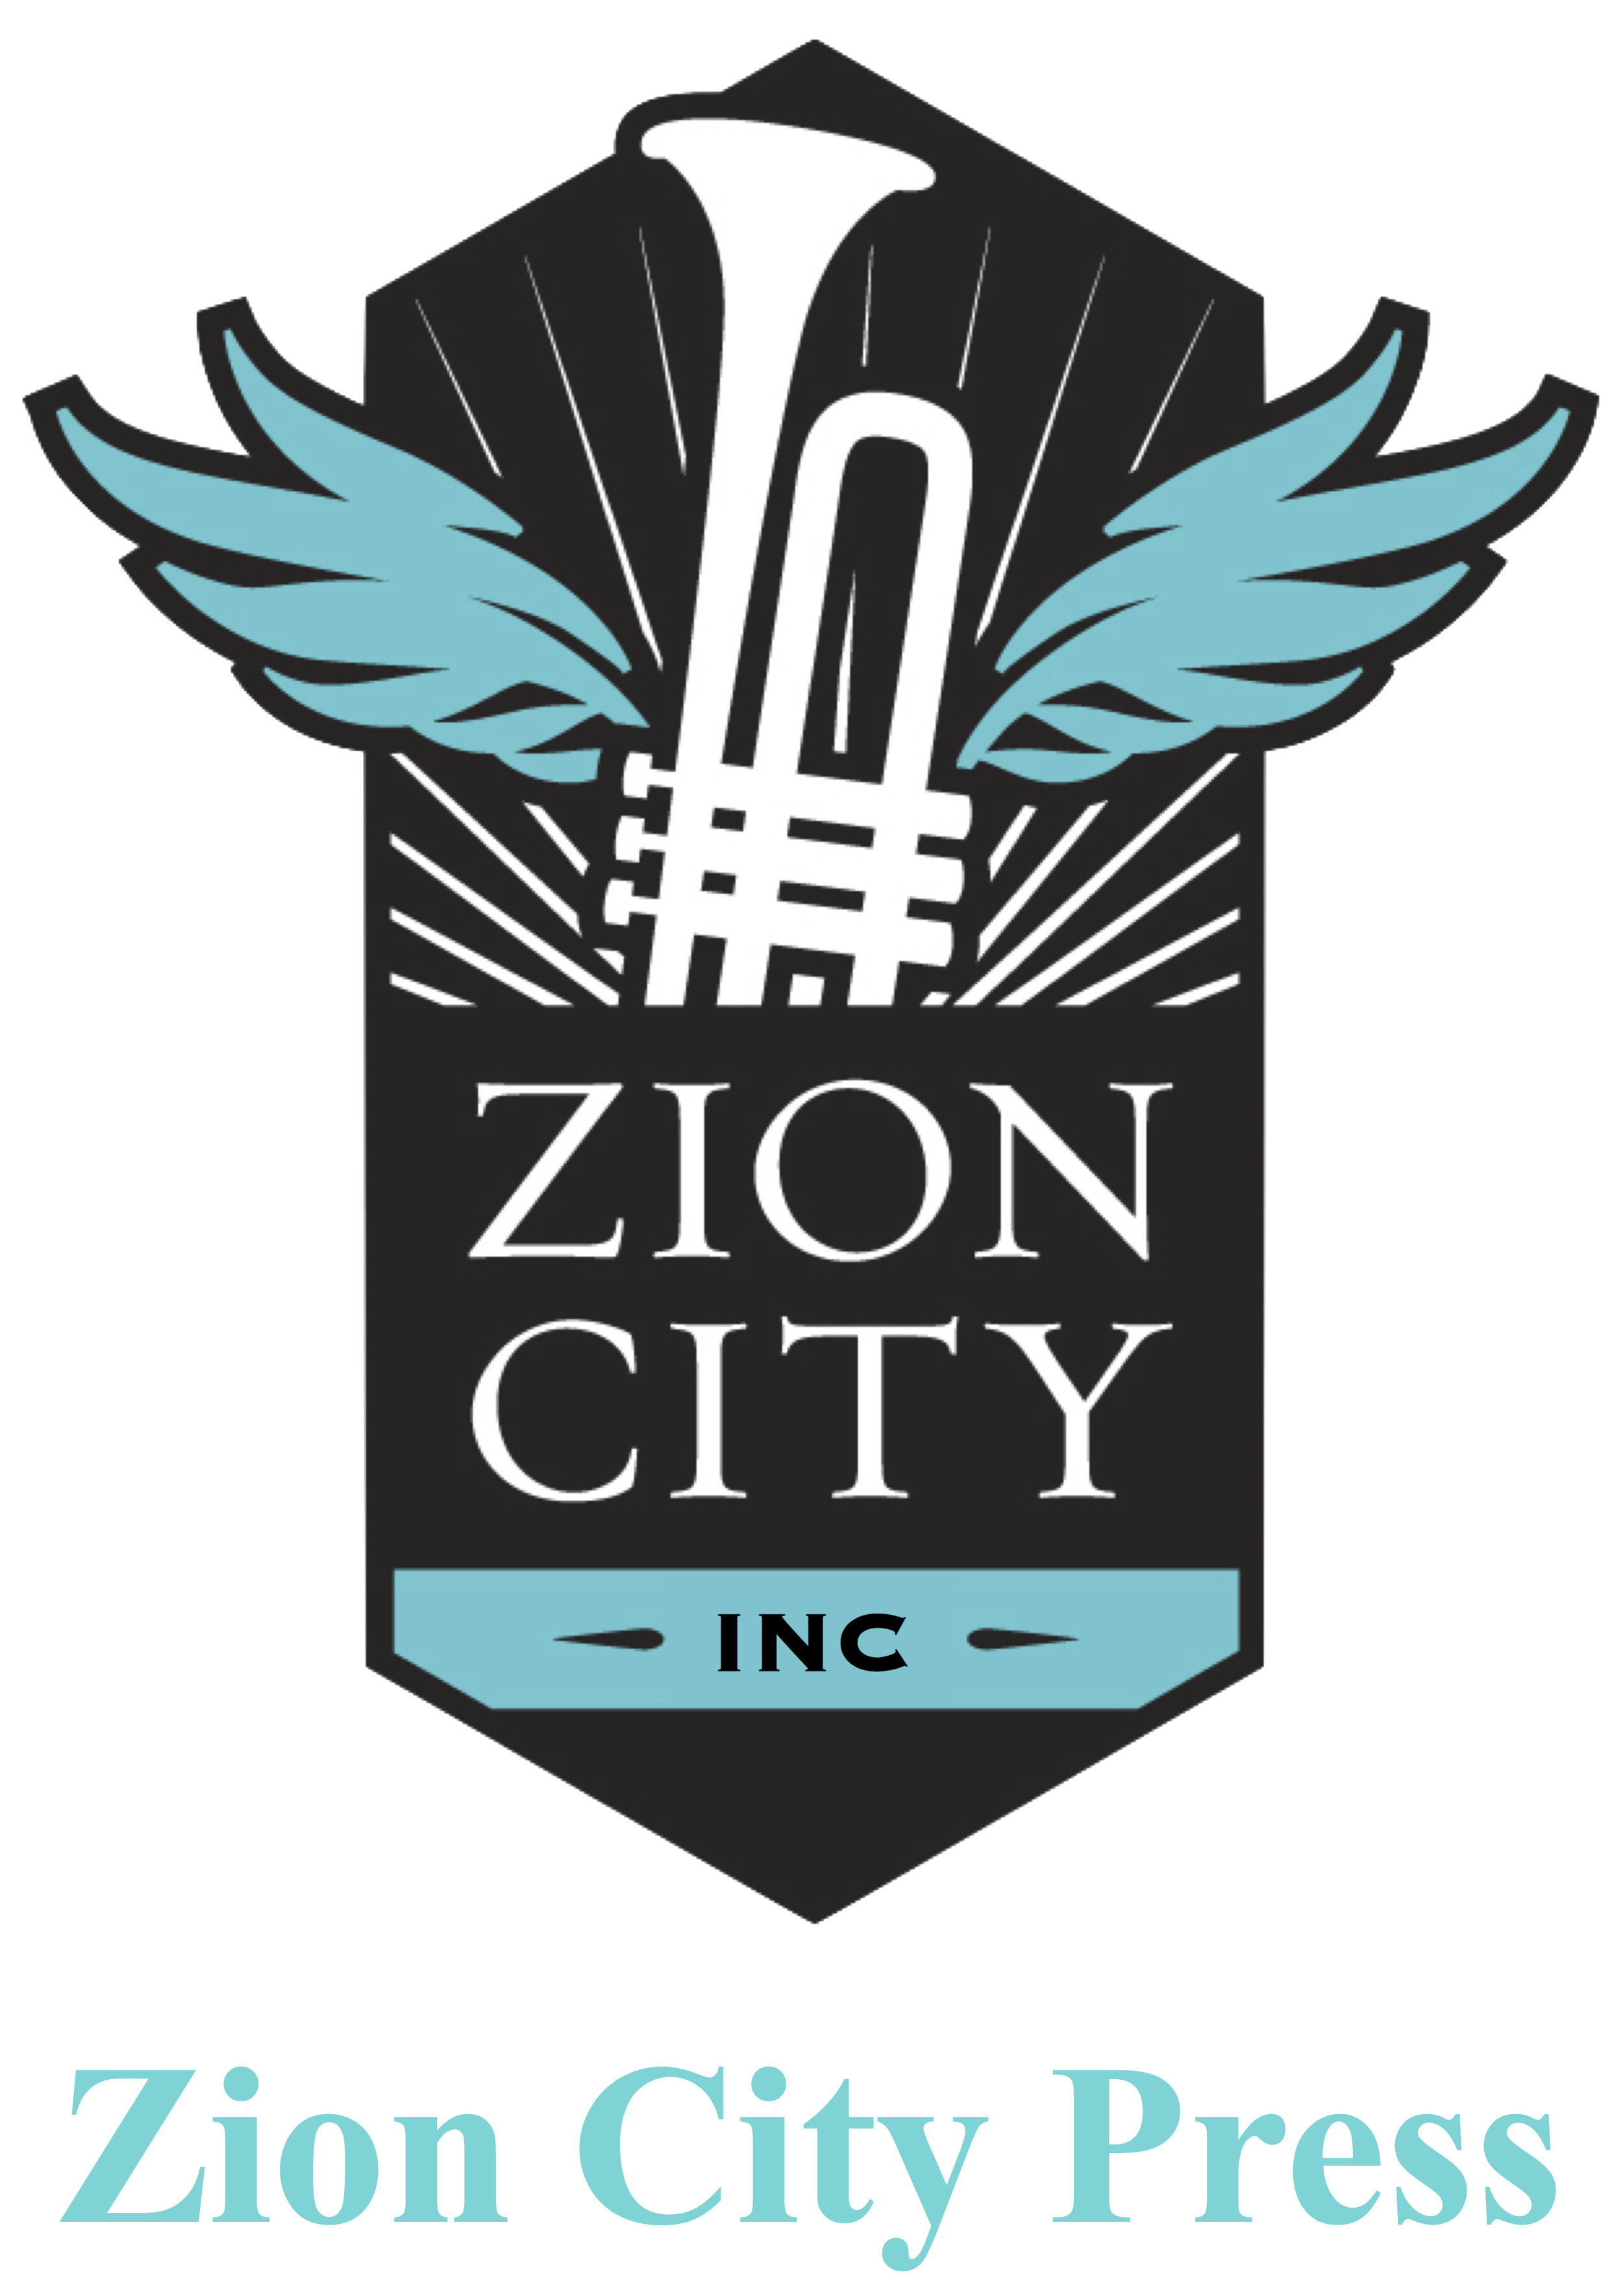 Zion City Press